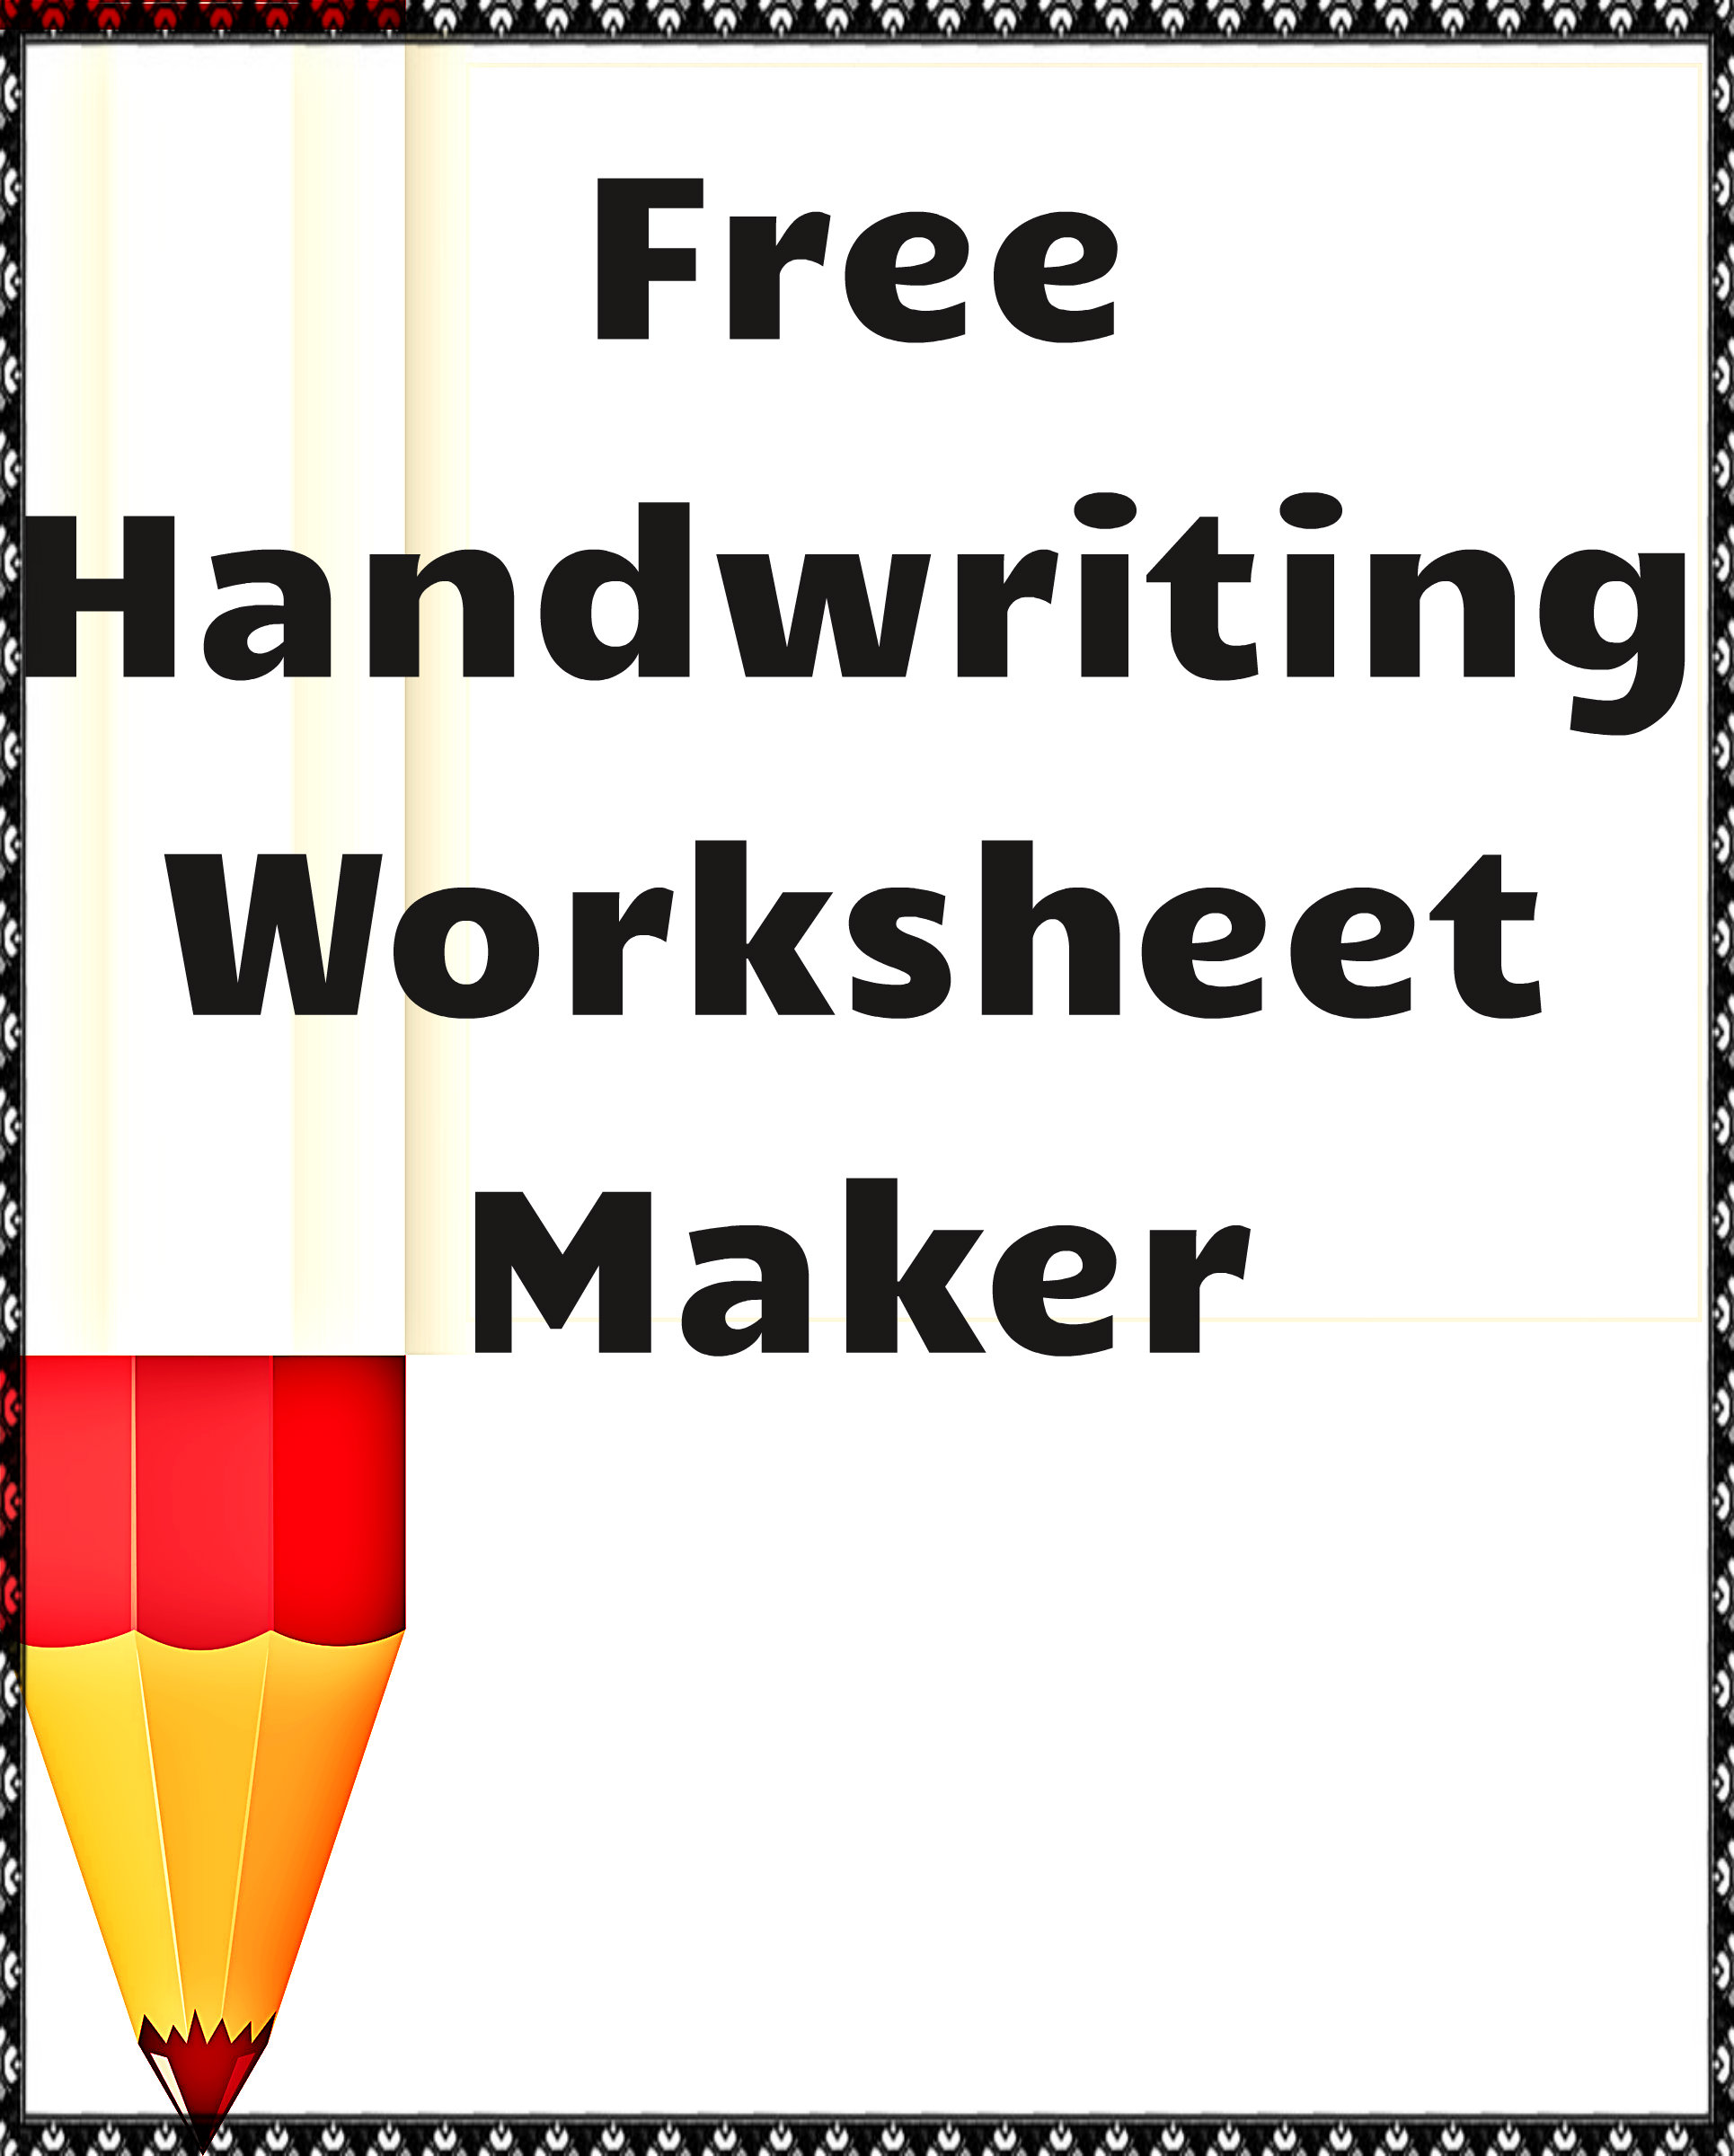 Worksheets Free Handwriting Worksheet Maker handwriting worksheet maker free classroom tools readyteacher com maker